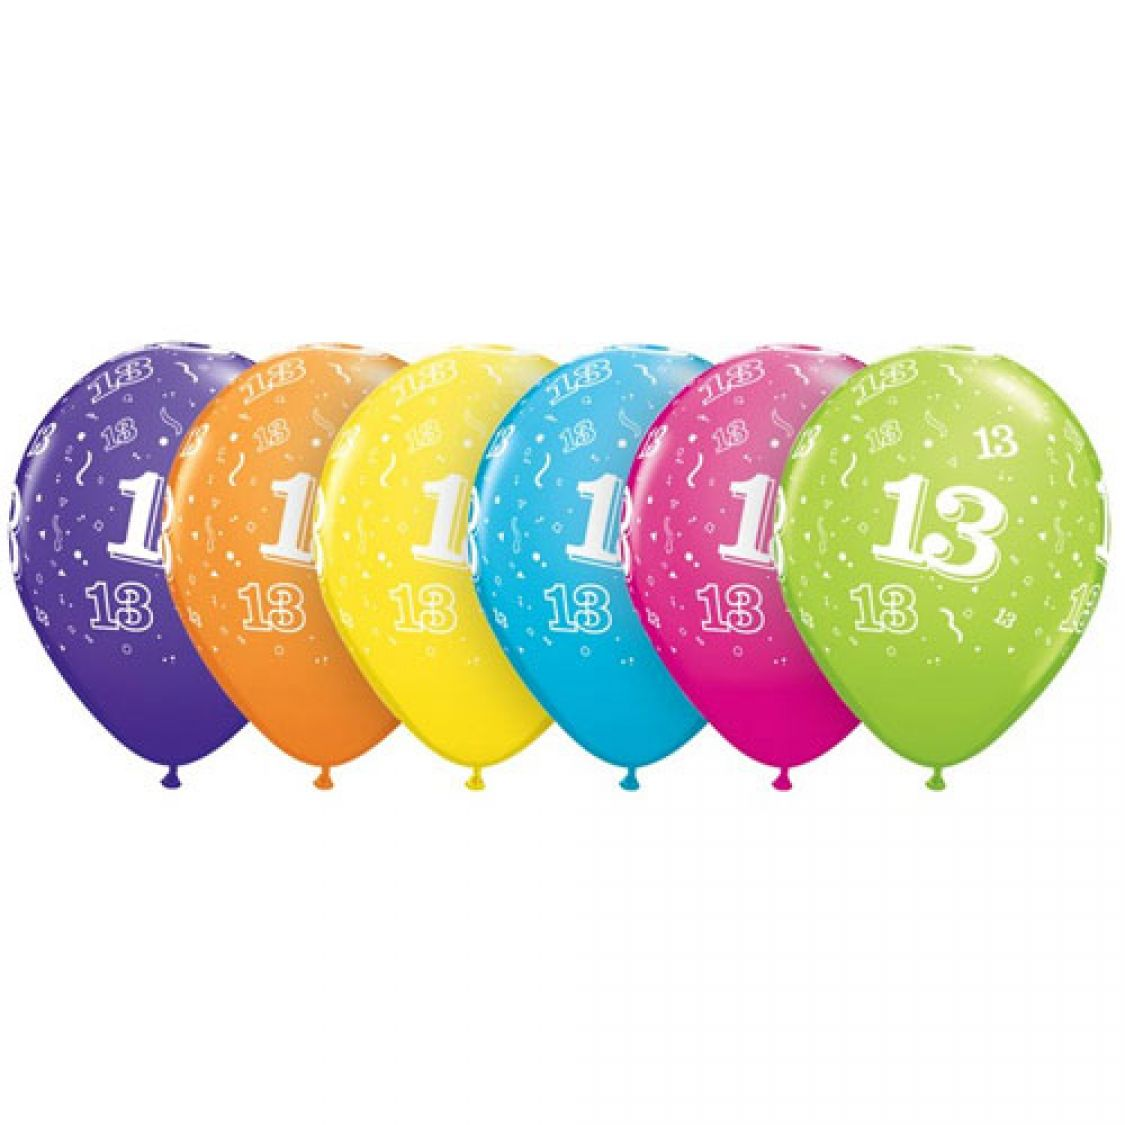 Ballon qualatex 13 assortiment tropical - Image ballon anniversaire ...